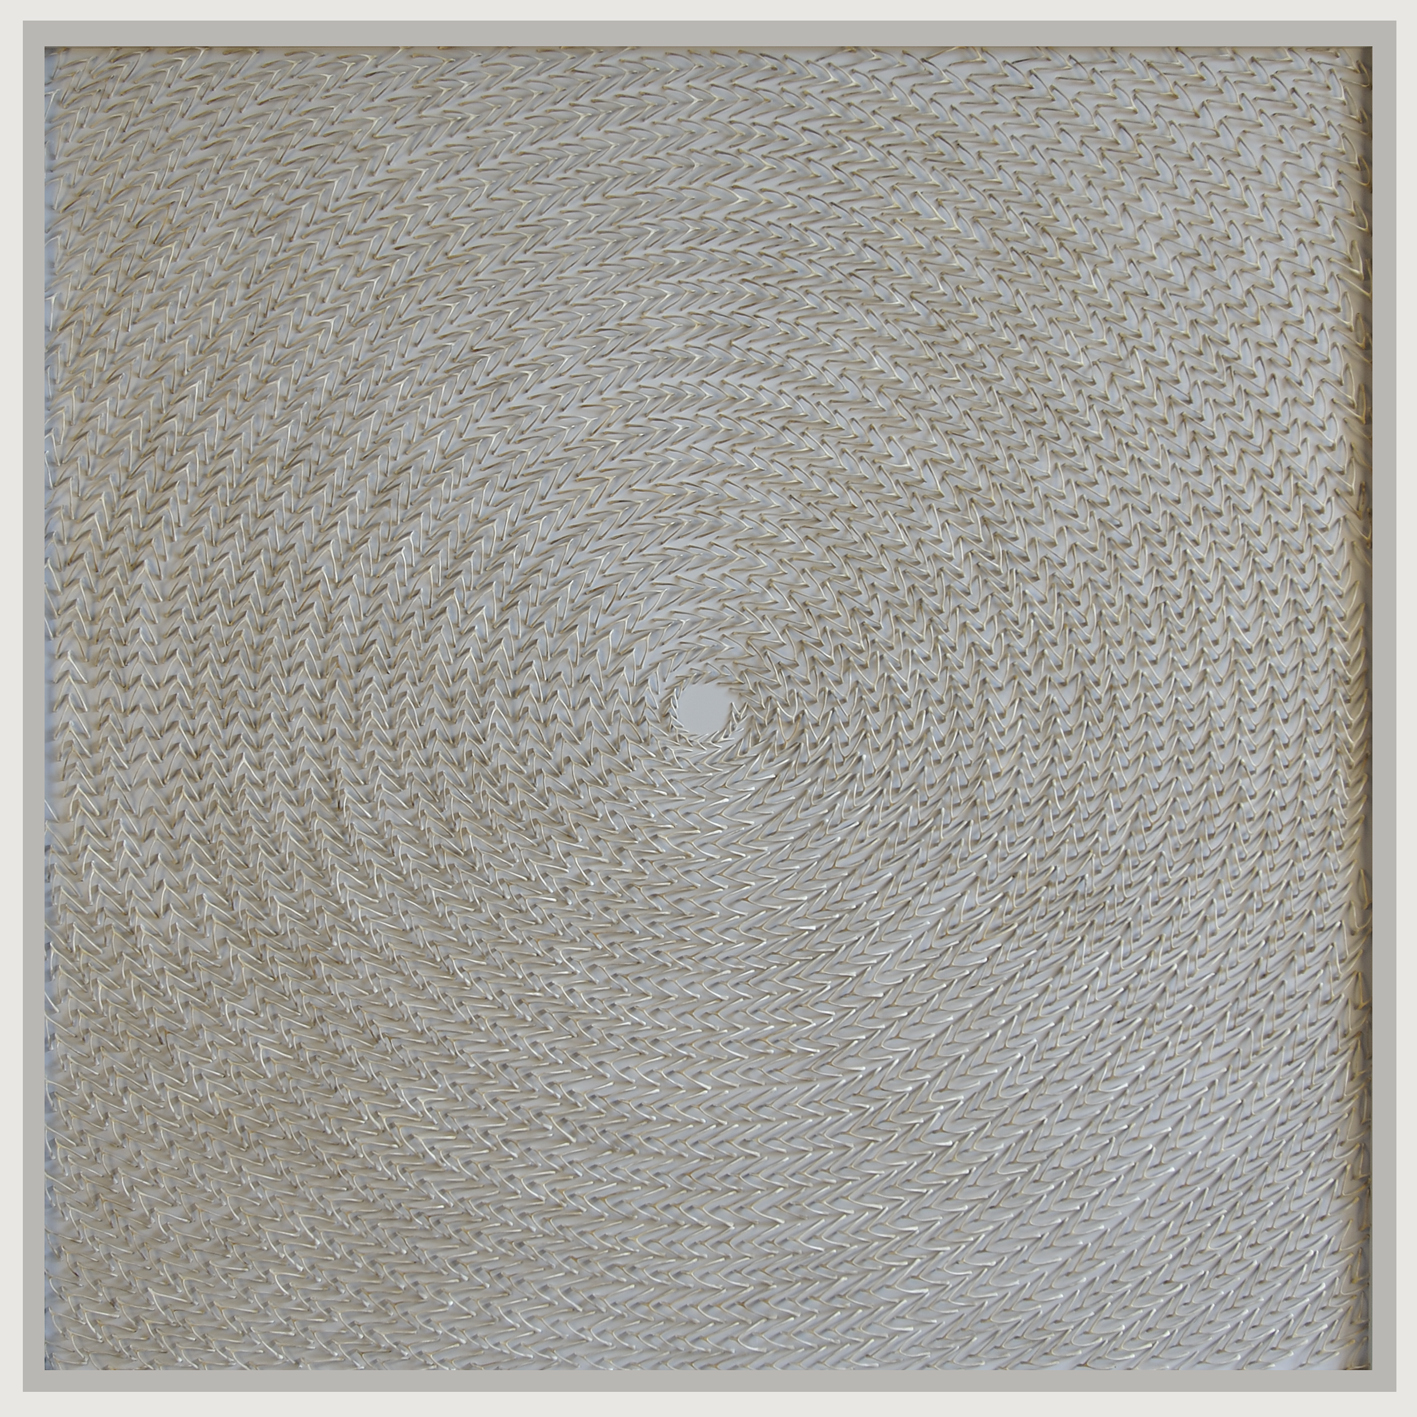 Brood (36 Days), 2007, Kate MccGwire